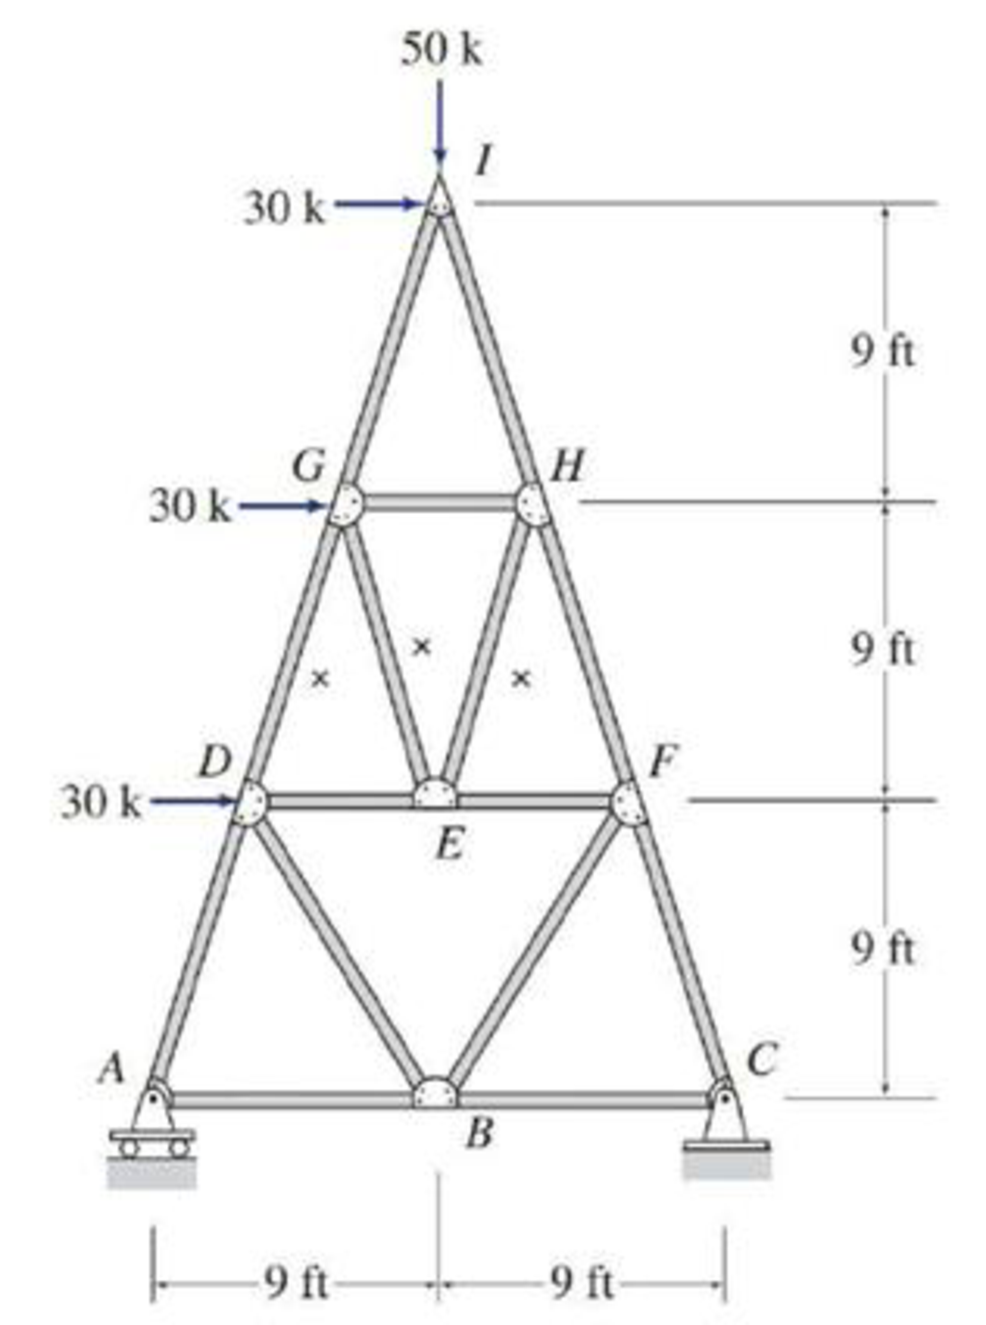 Chapter 4, Problem 42P, 4.33 through 4.45 Determine the forces in the members identified by  of the truss shown by the